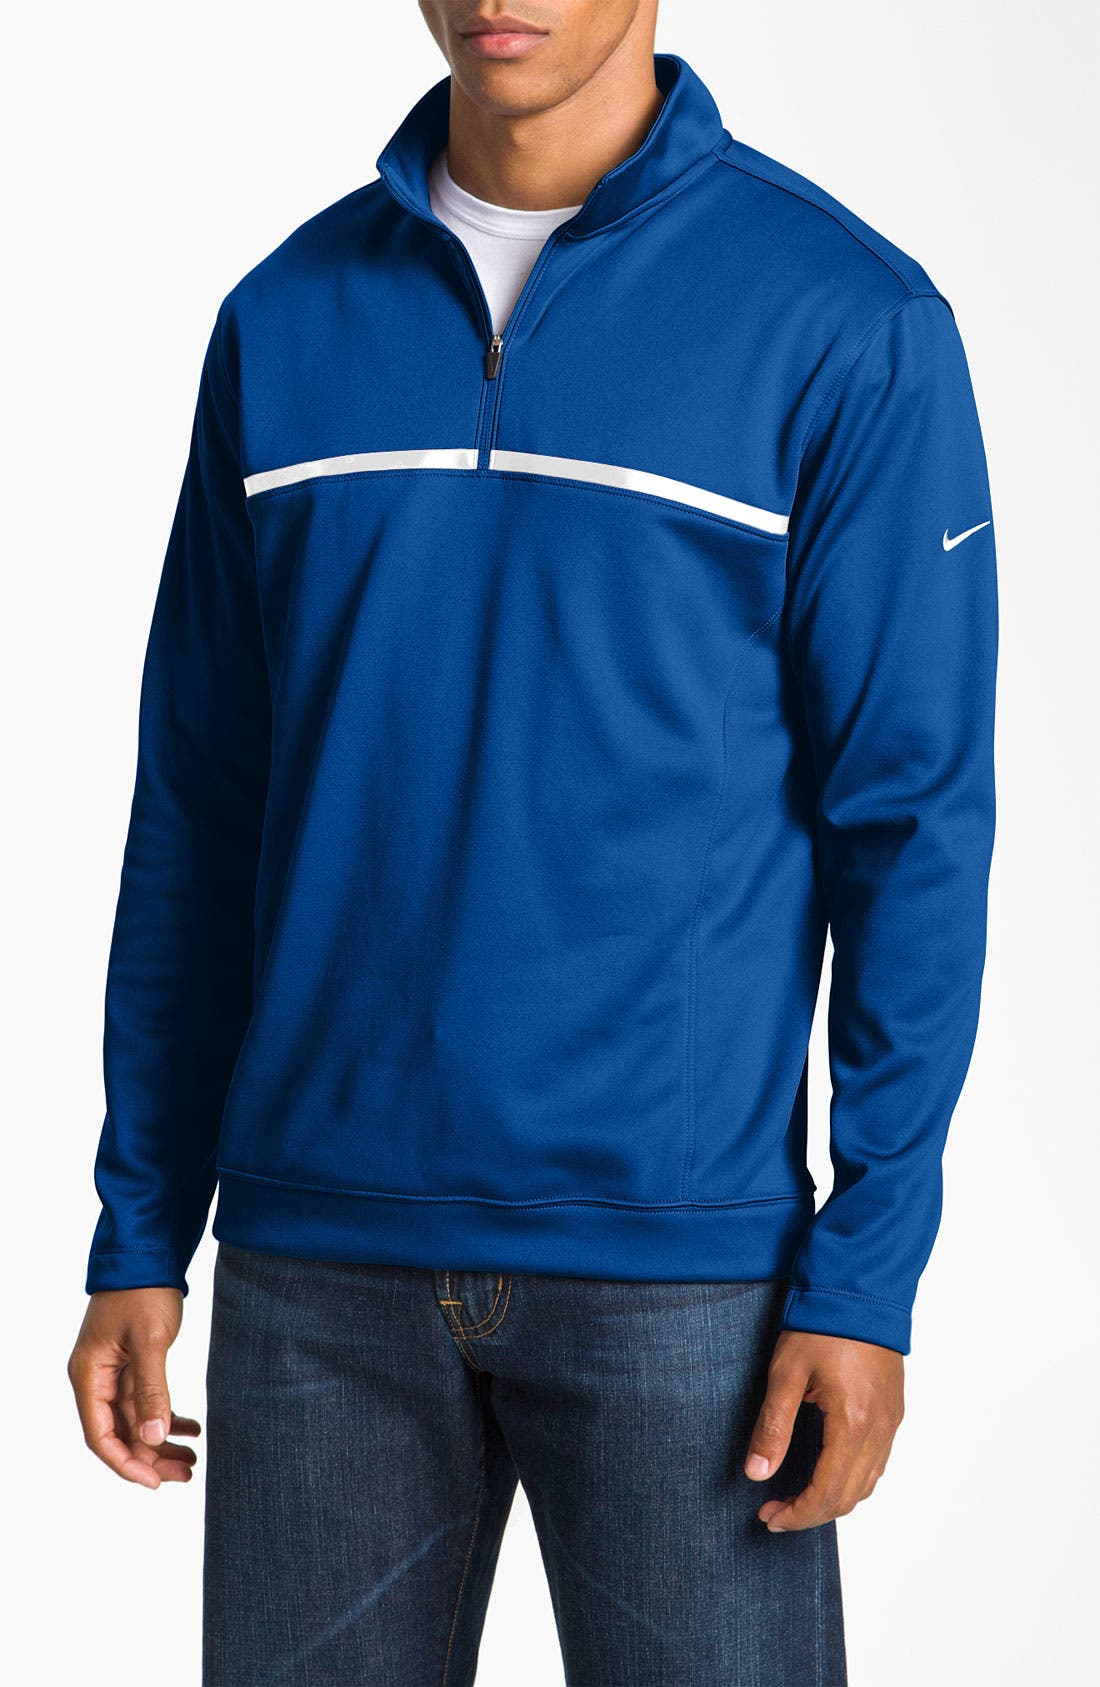 Alternate Image 1 Selected - Nike Golf 'Therma-FIT' Quarter Zip Pullover